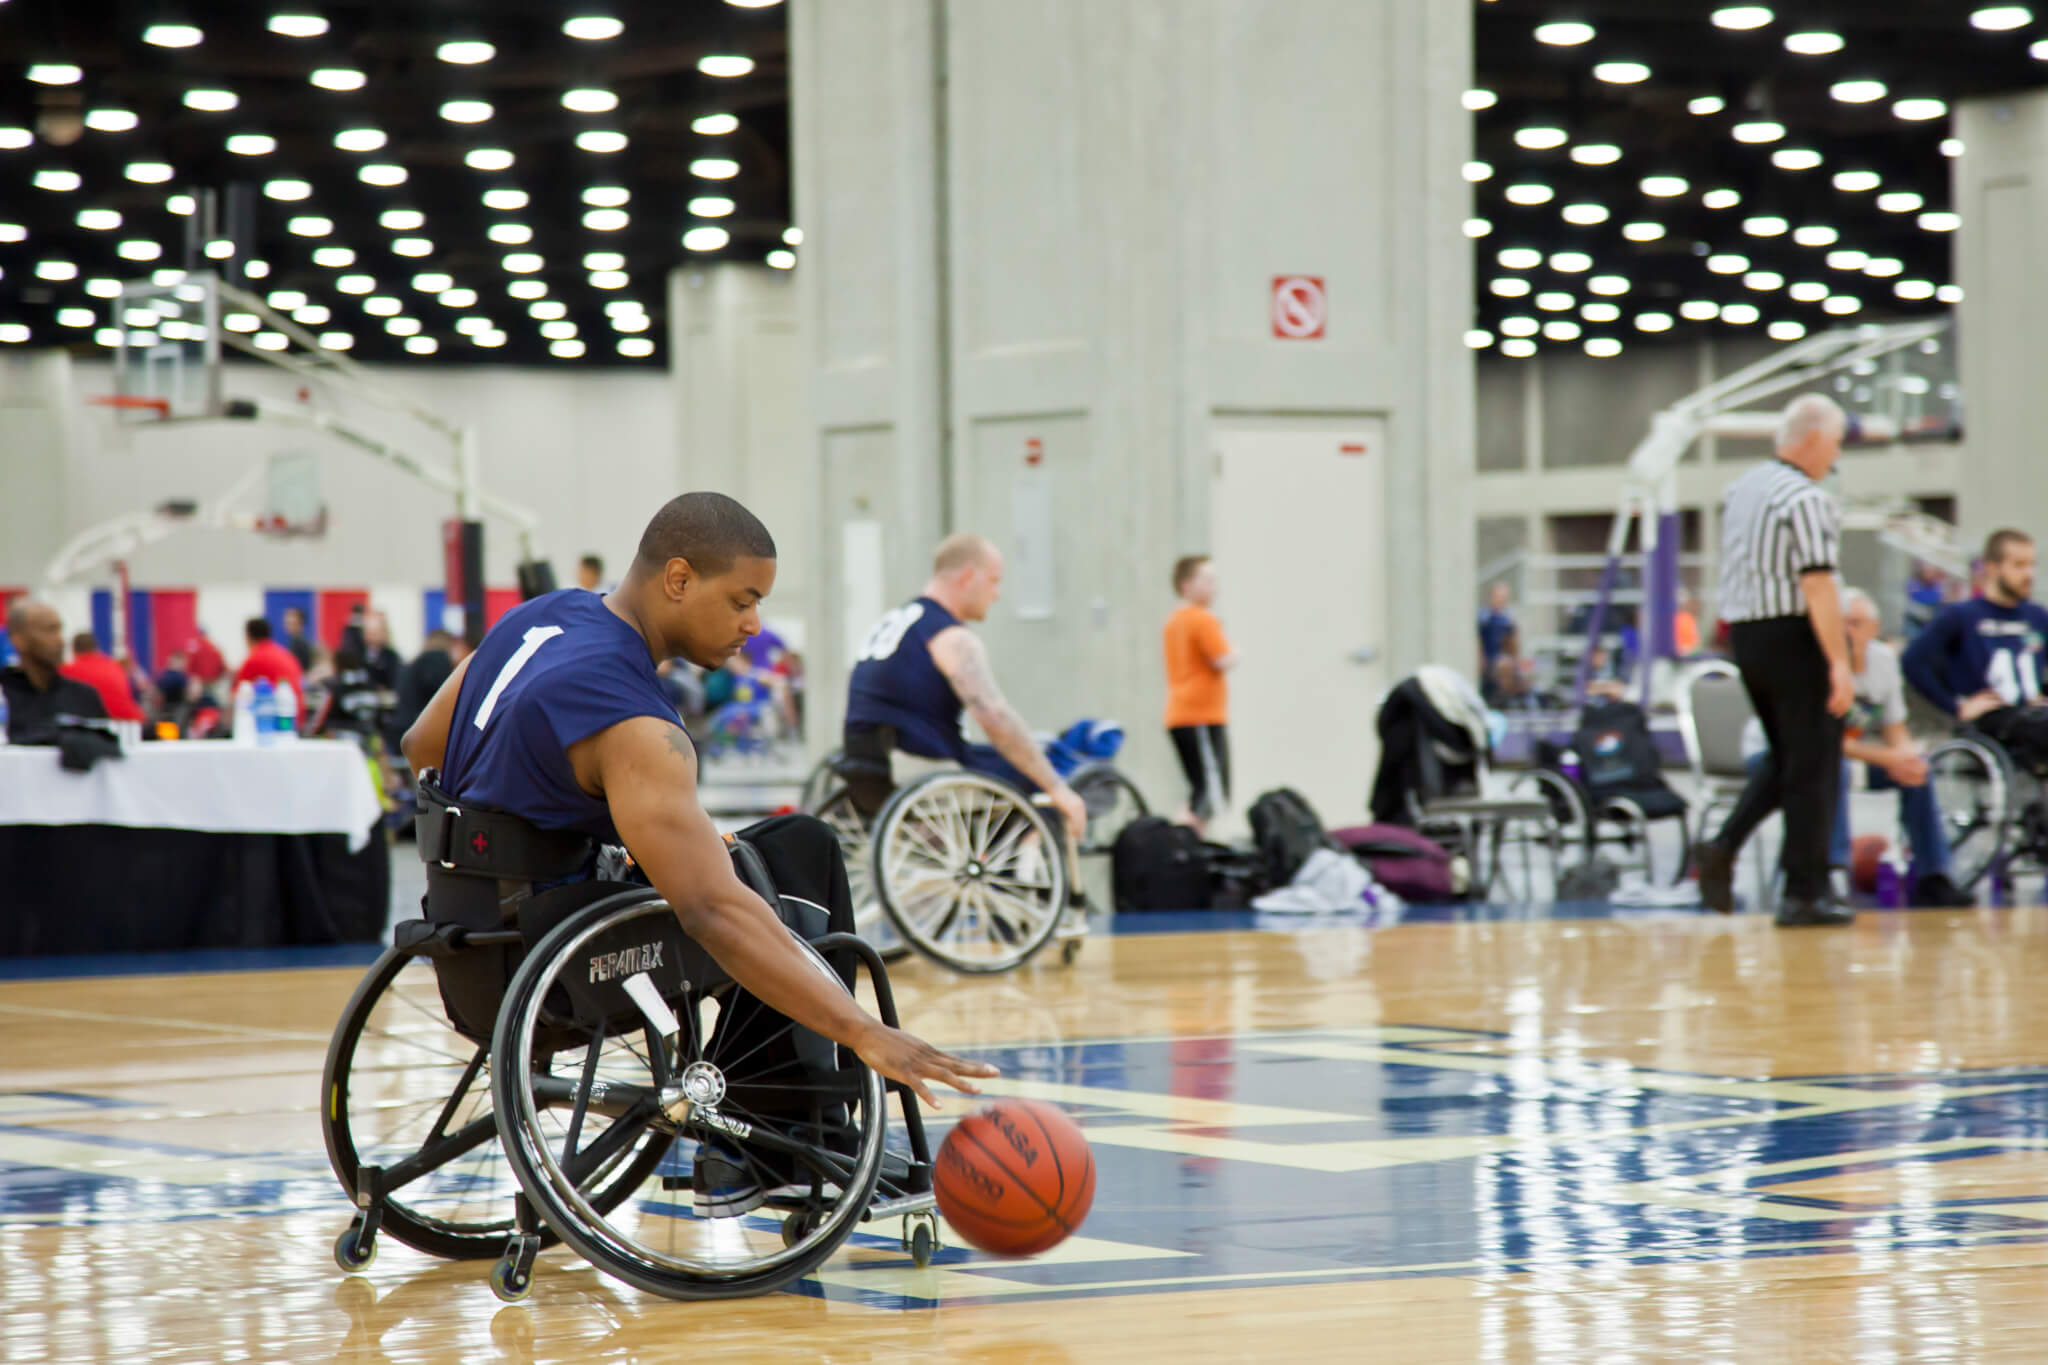 PL ZRCMRT2 original - Wheelchair Basketball